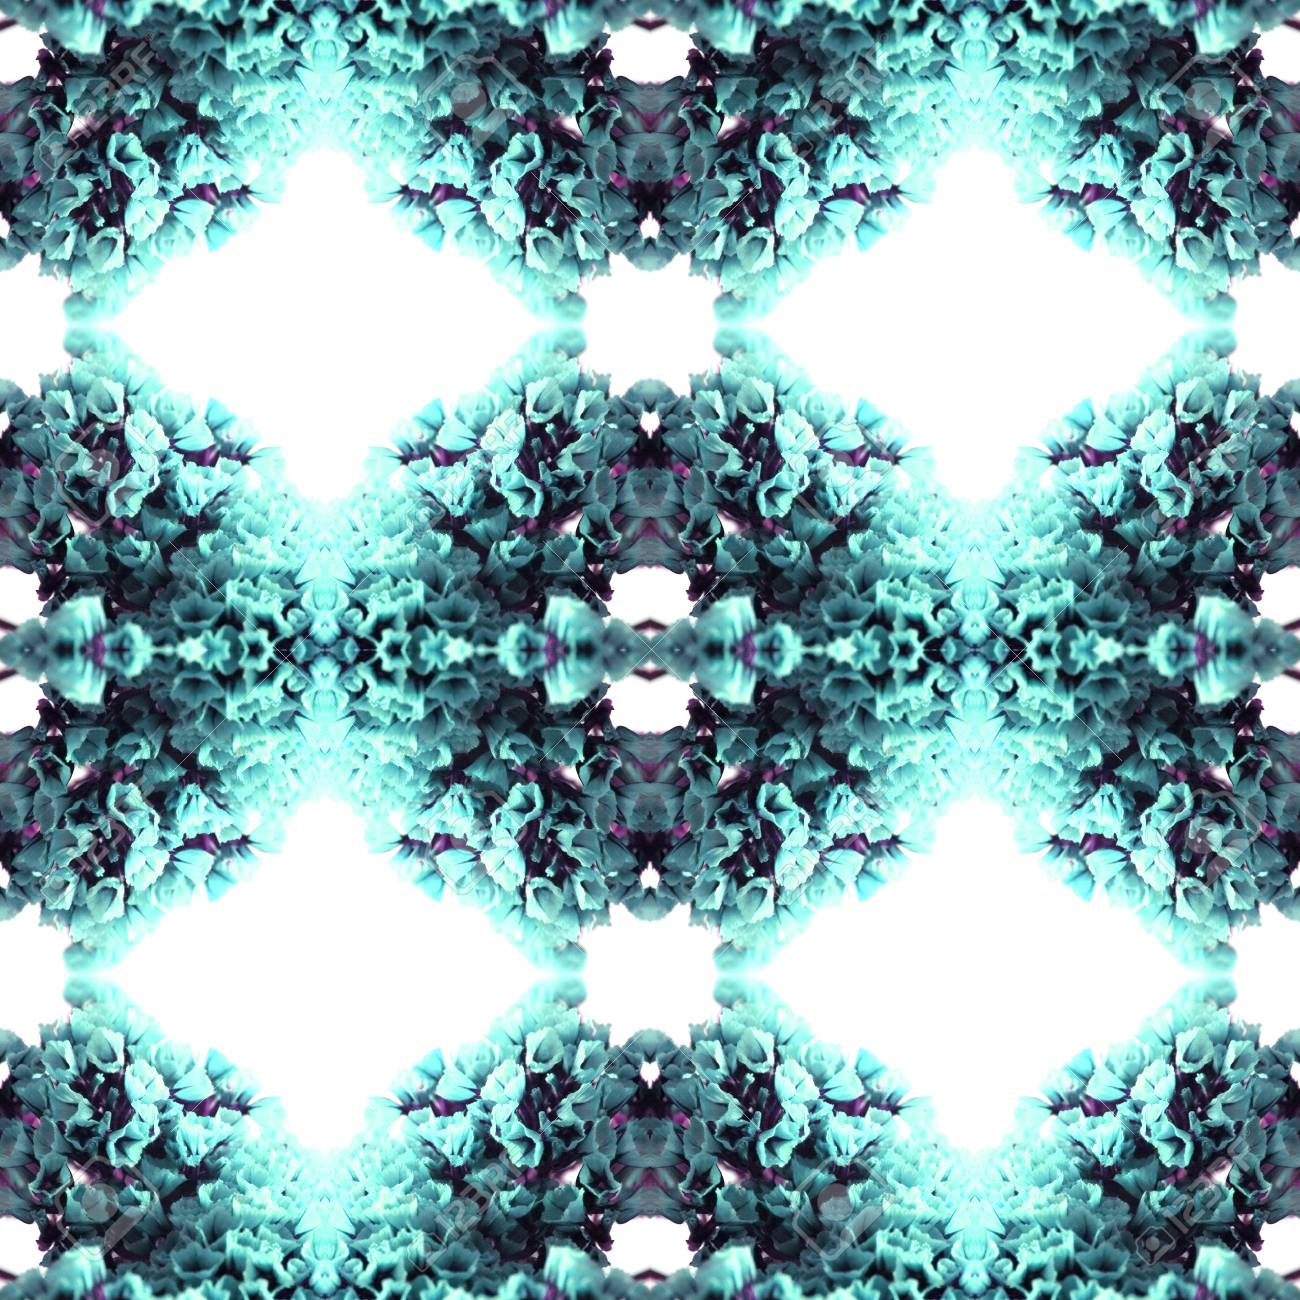 Abstract flowers seamless pattern background. Kaleidoscope from flowers. Hydraulic tile design. - 104074917